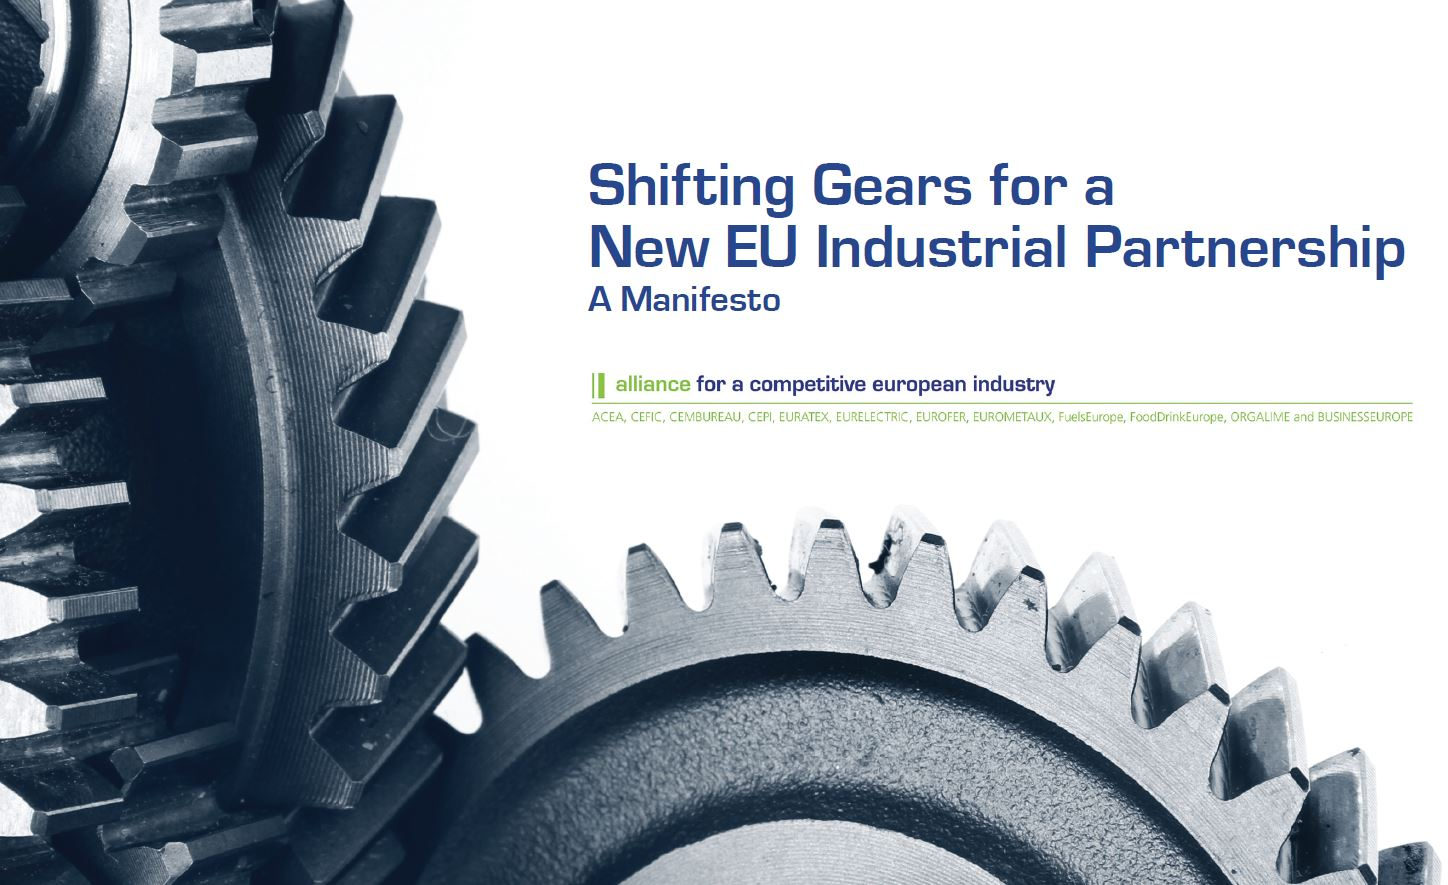 Shifting Gears for a New EU Industrial Partnership – A Manifesto